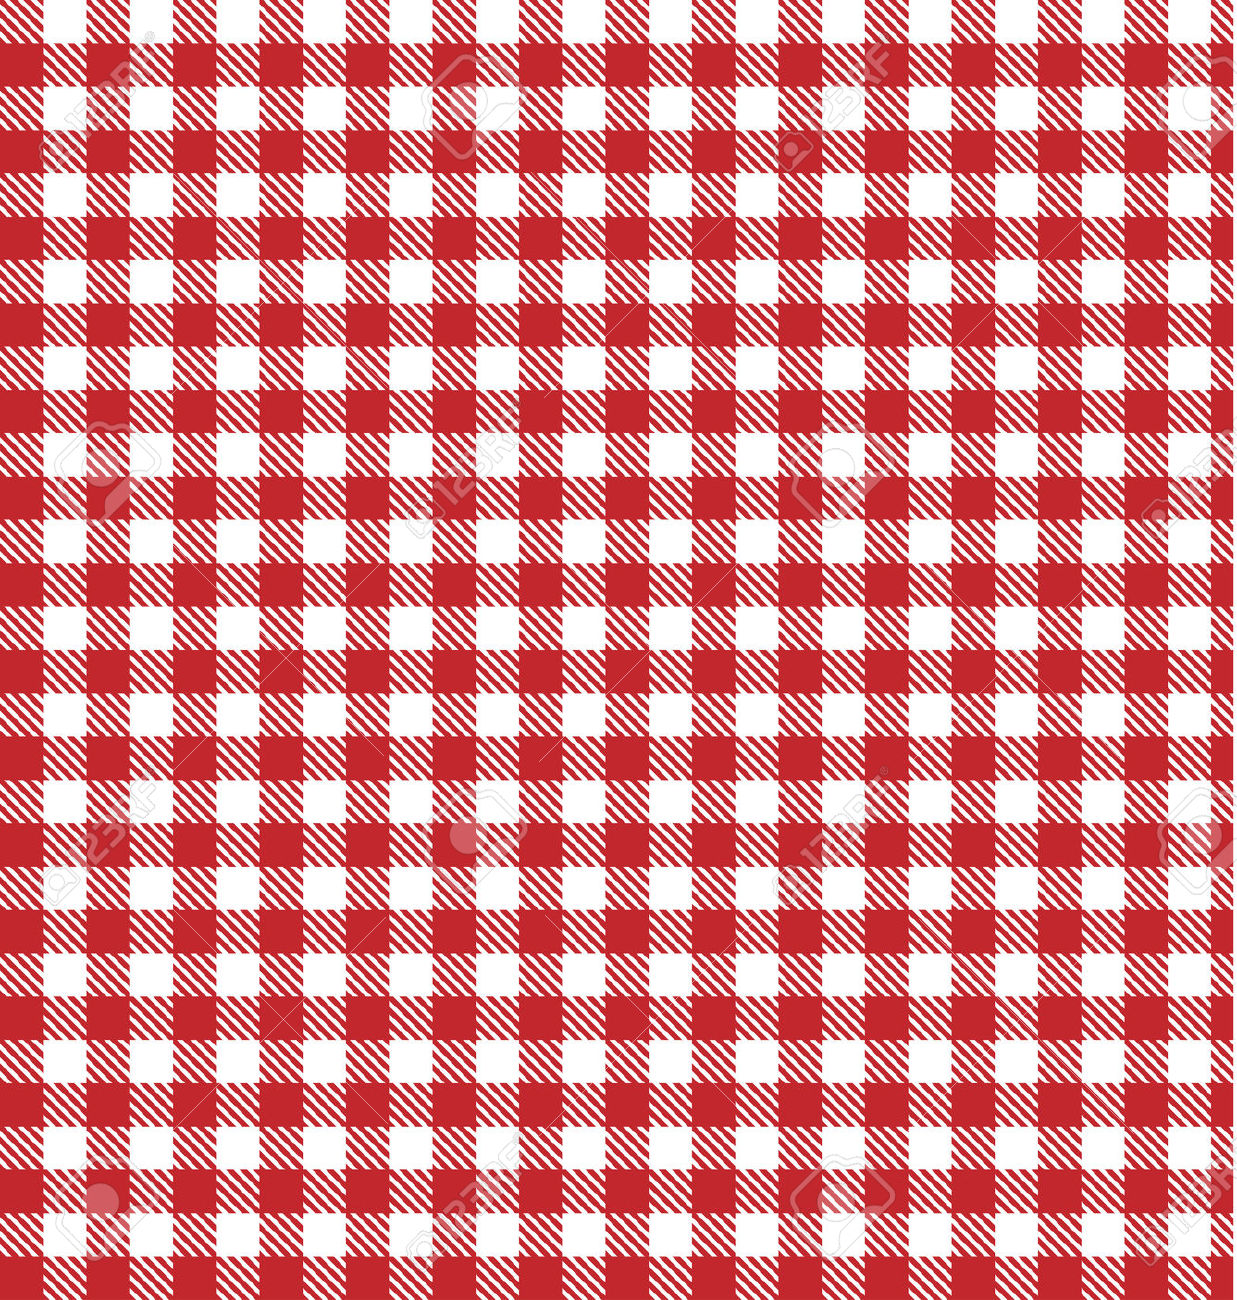 Plaid table cloth clipart.